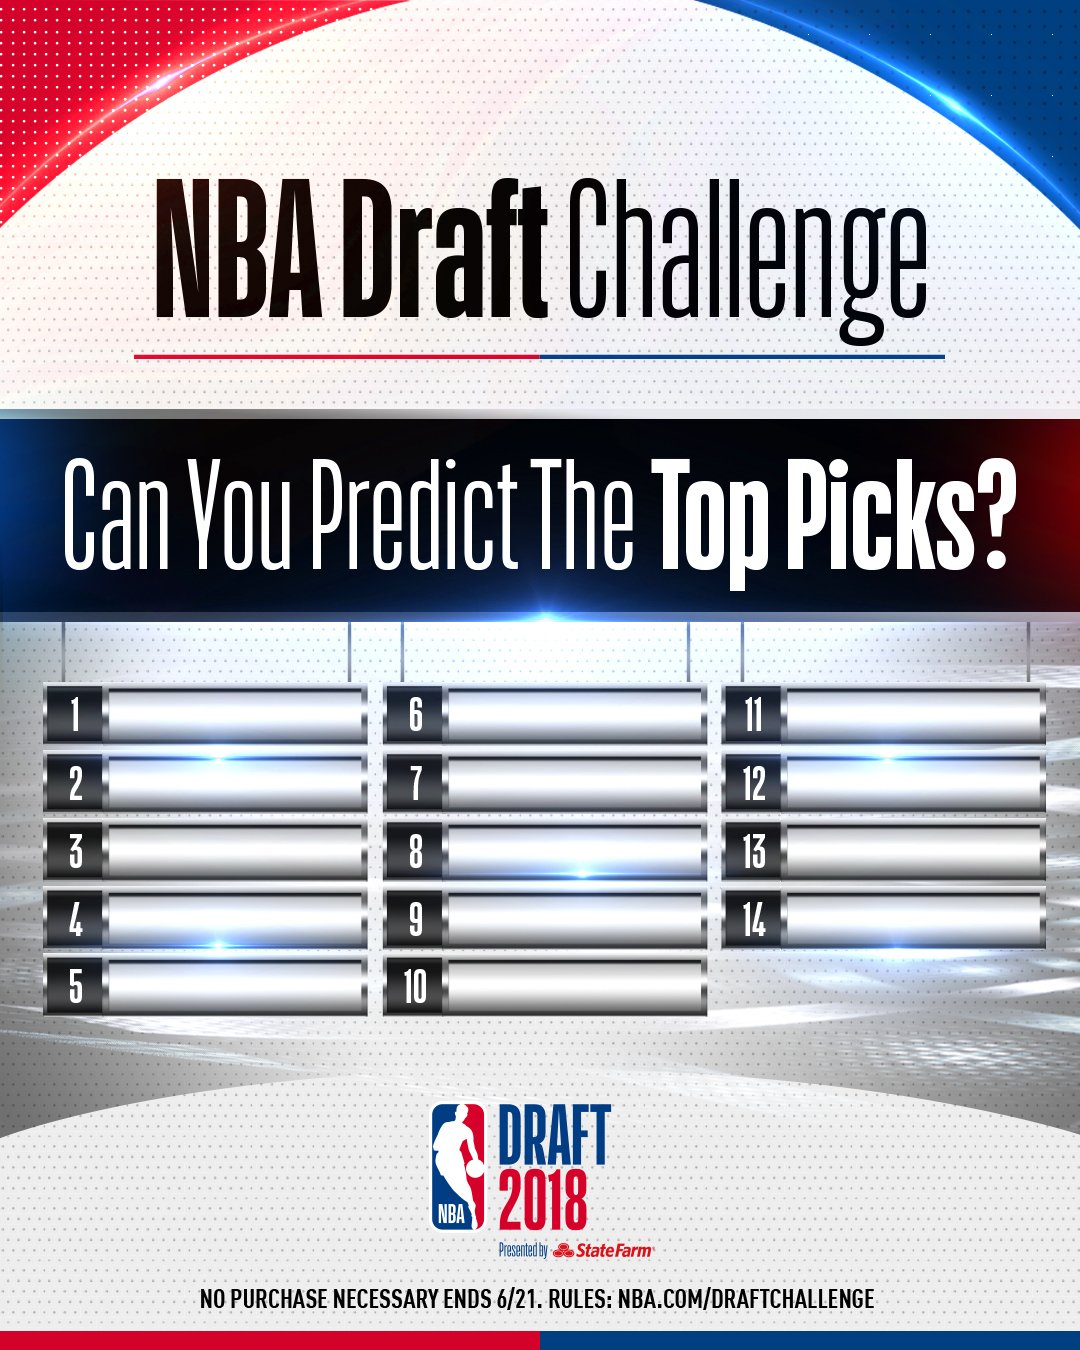 1 week til the #NBADraft!   Have you signed up for the NBA Draft Challenge yet? https://t.co/enJUUXs2XO https://t.co/jNRXZXcygq